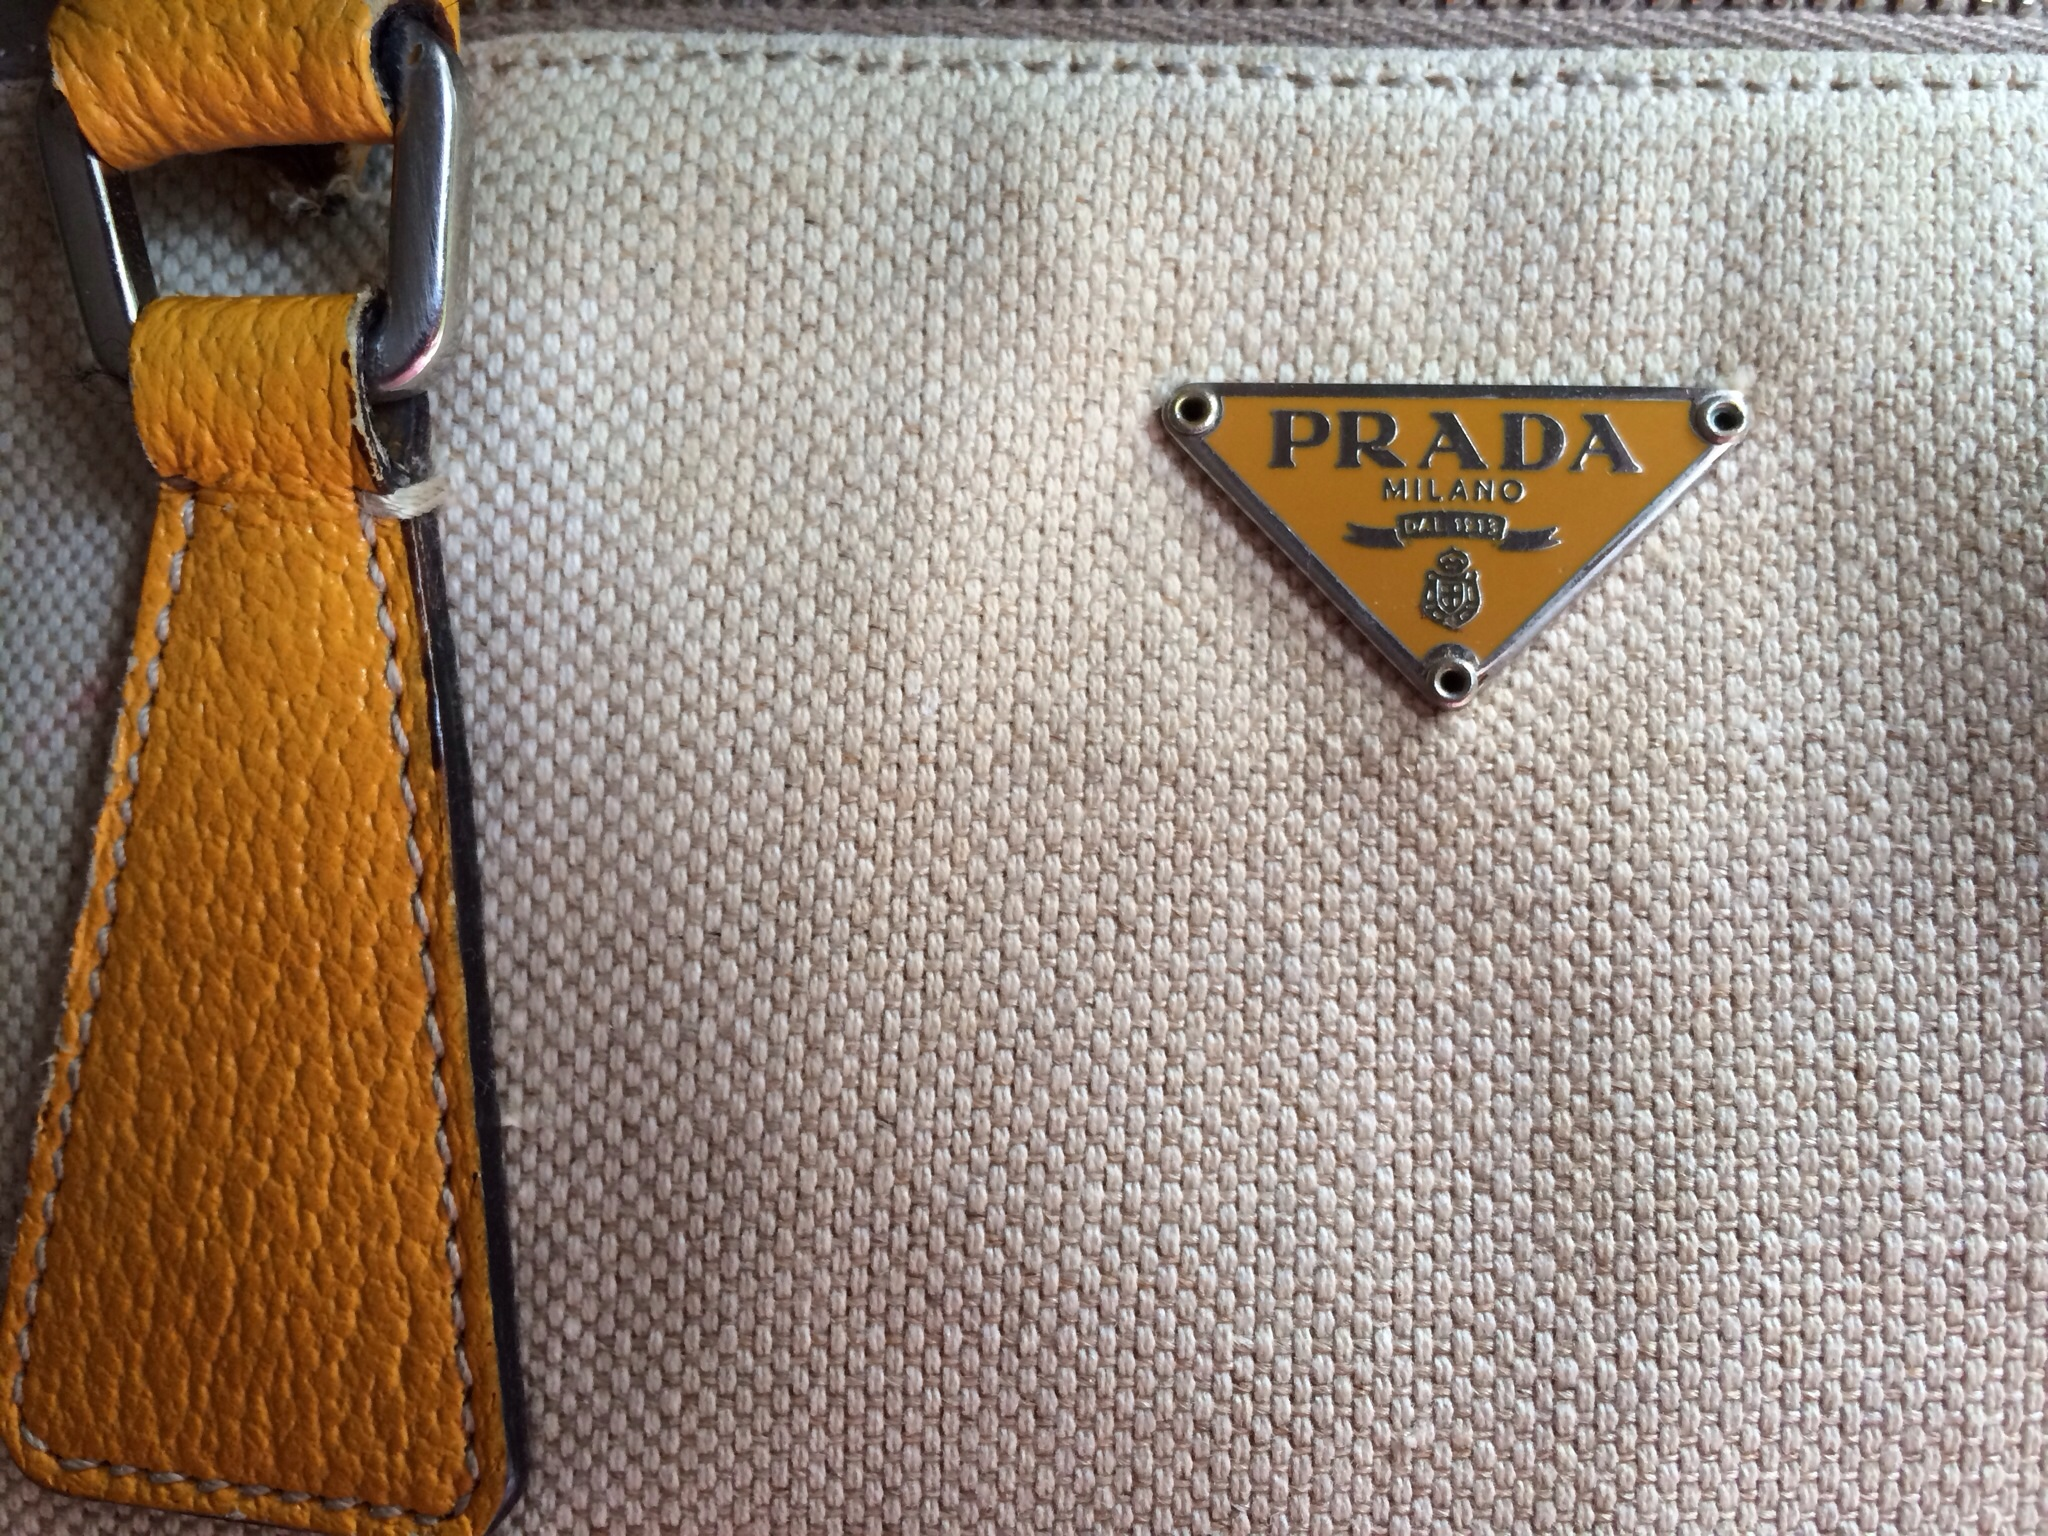 prada saffiano handbag - Prada purse, real or not? - The eBay Community